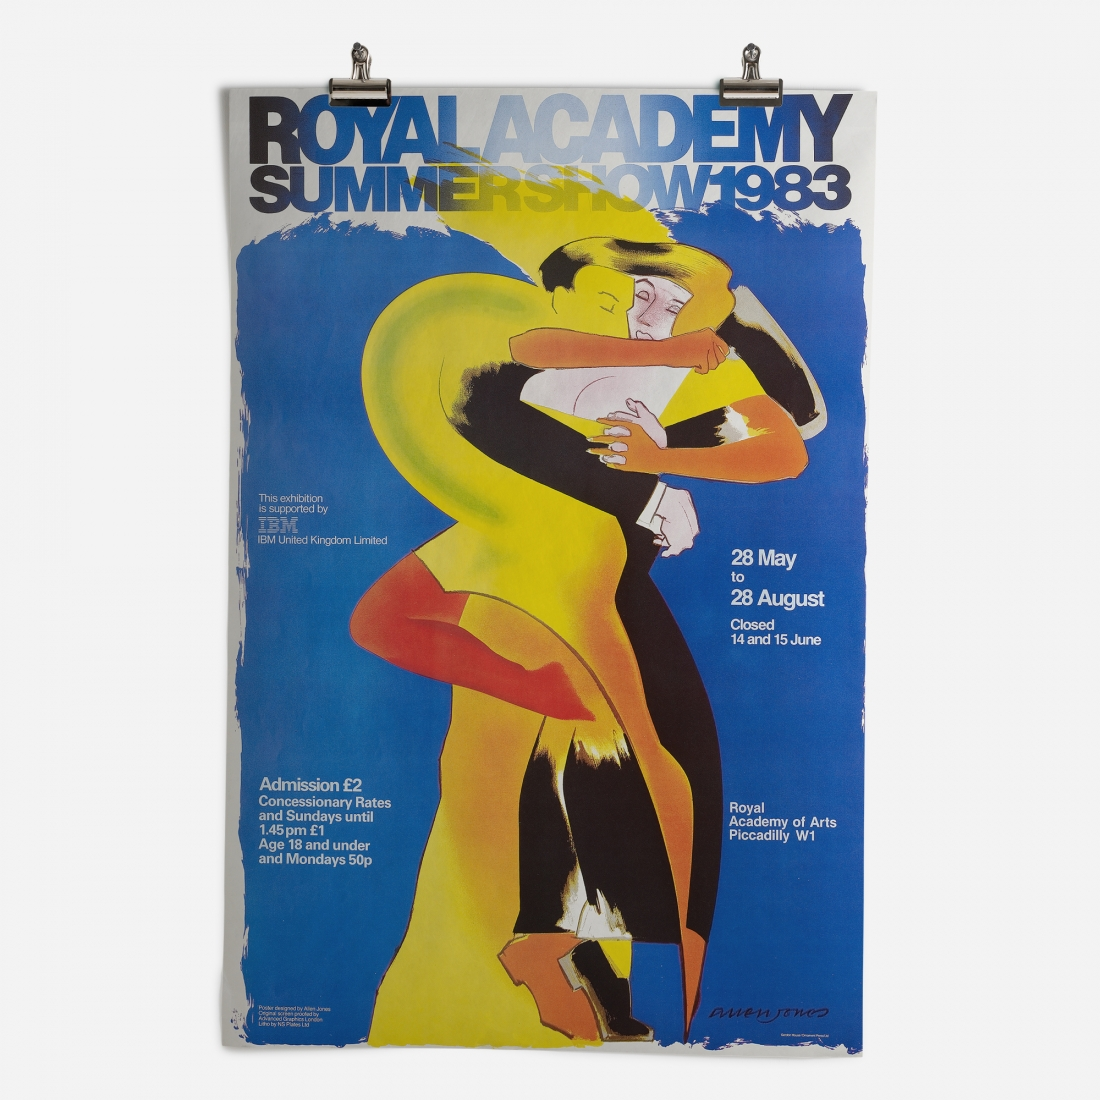 RA Summer Exhibition 1983 Epic Poster ​from the Royal Academy of Arts Collection